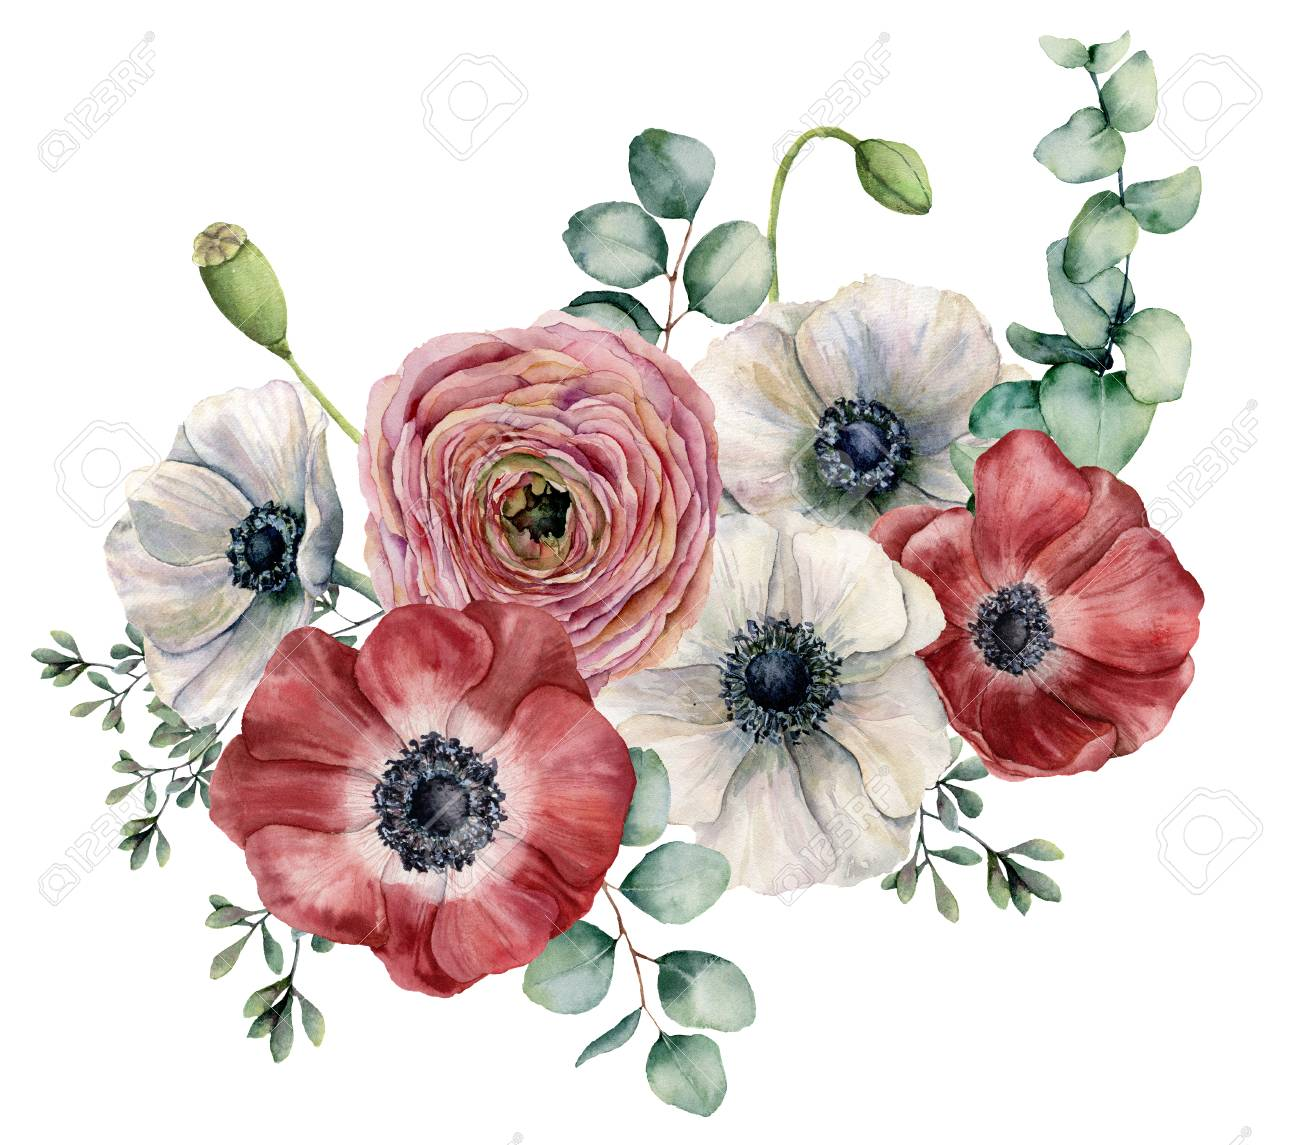 Watercolor Ranunculus And Anemone Bouquet Hand Painted Red And Stock Photo Picture And Royalty Free Image Image 102874336